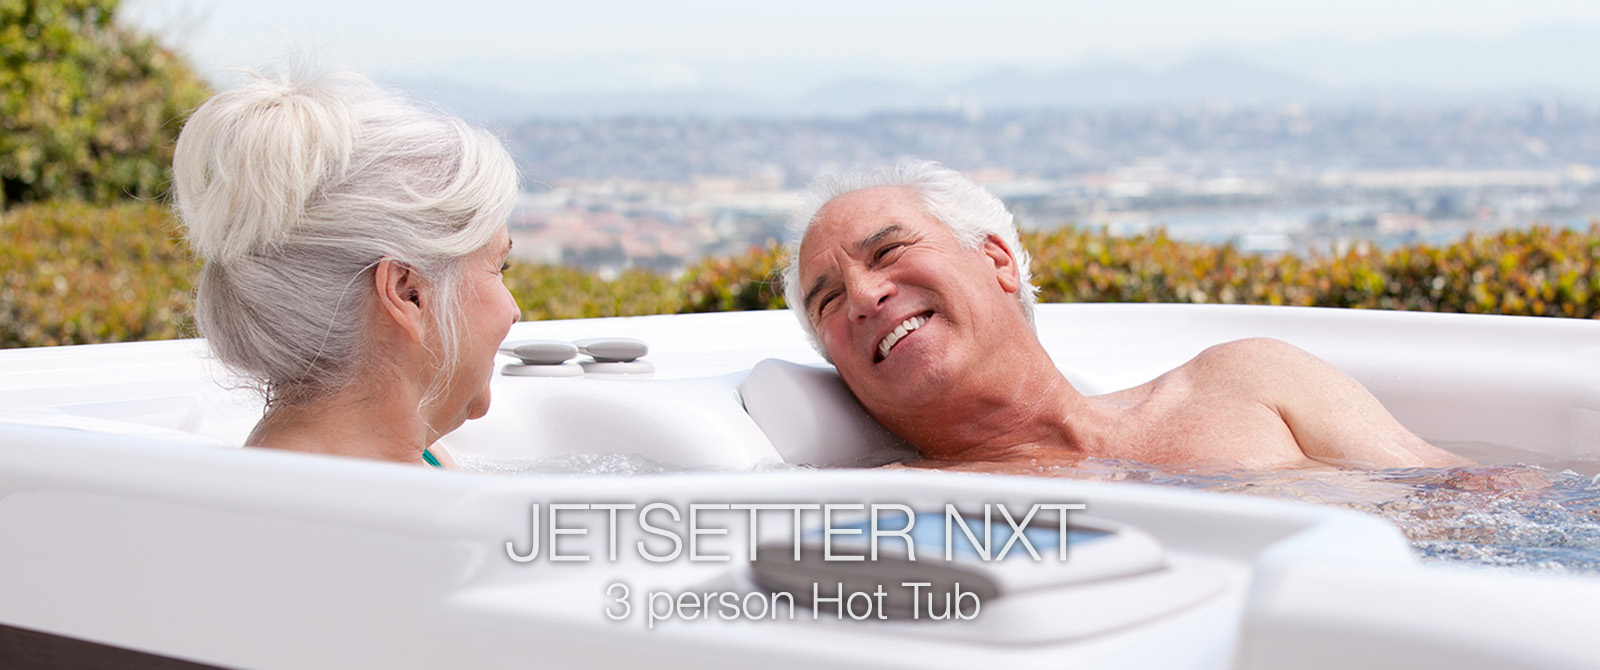 the jetsetter nxt hotspring spa lanzarote